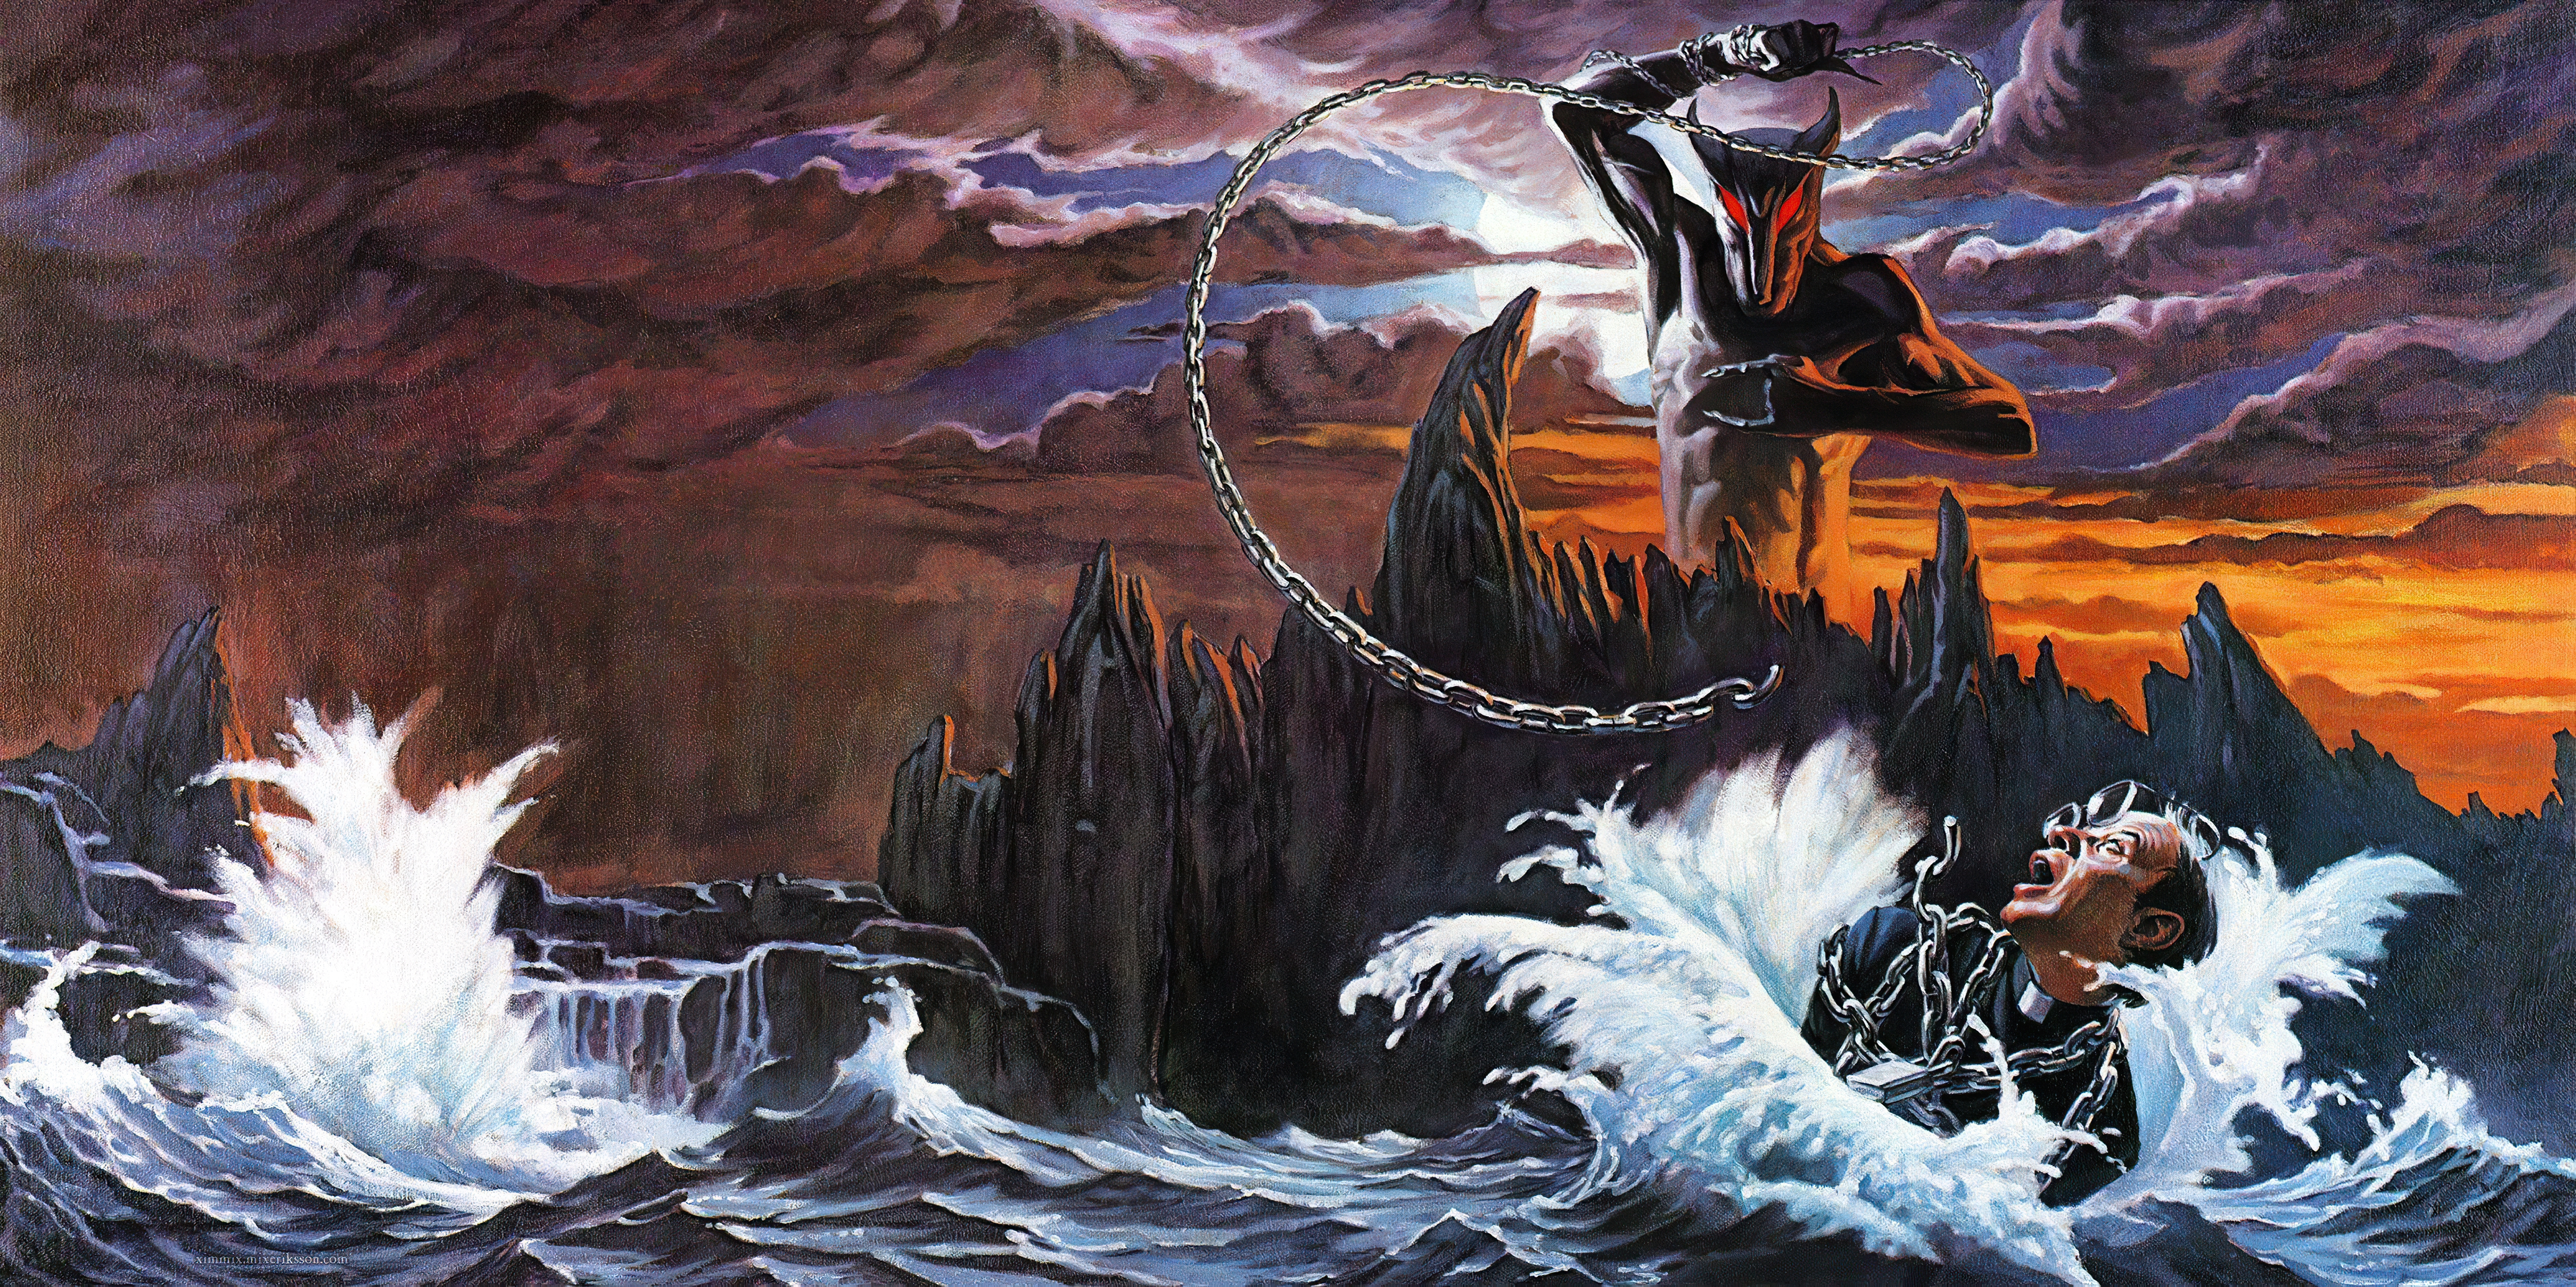 General 5002x2500 heavy metal Dio (band) cover art 6k rock music metal music horns chains in water horror metal horns hand gesture creature backlighting waves men with glasses men album covers drowning fantasy art artwork traditional art traditional heavy metal open mouth